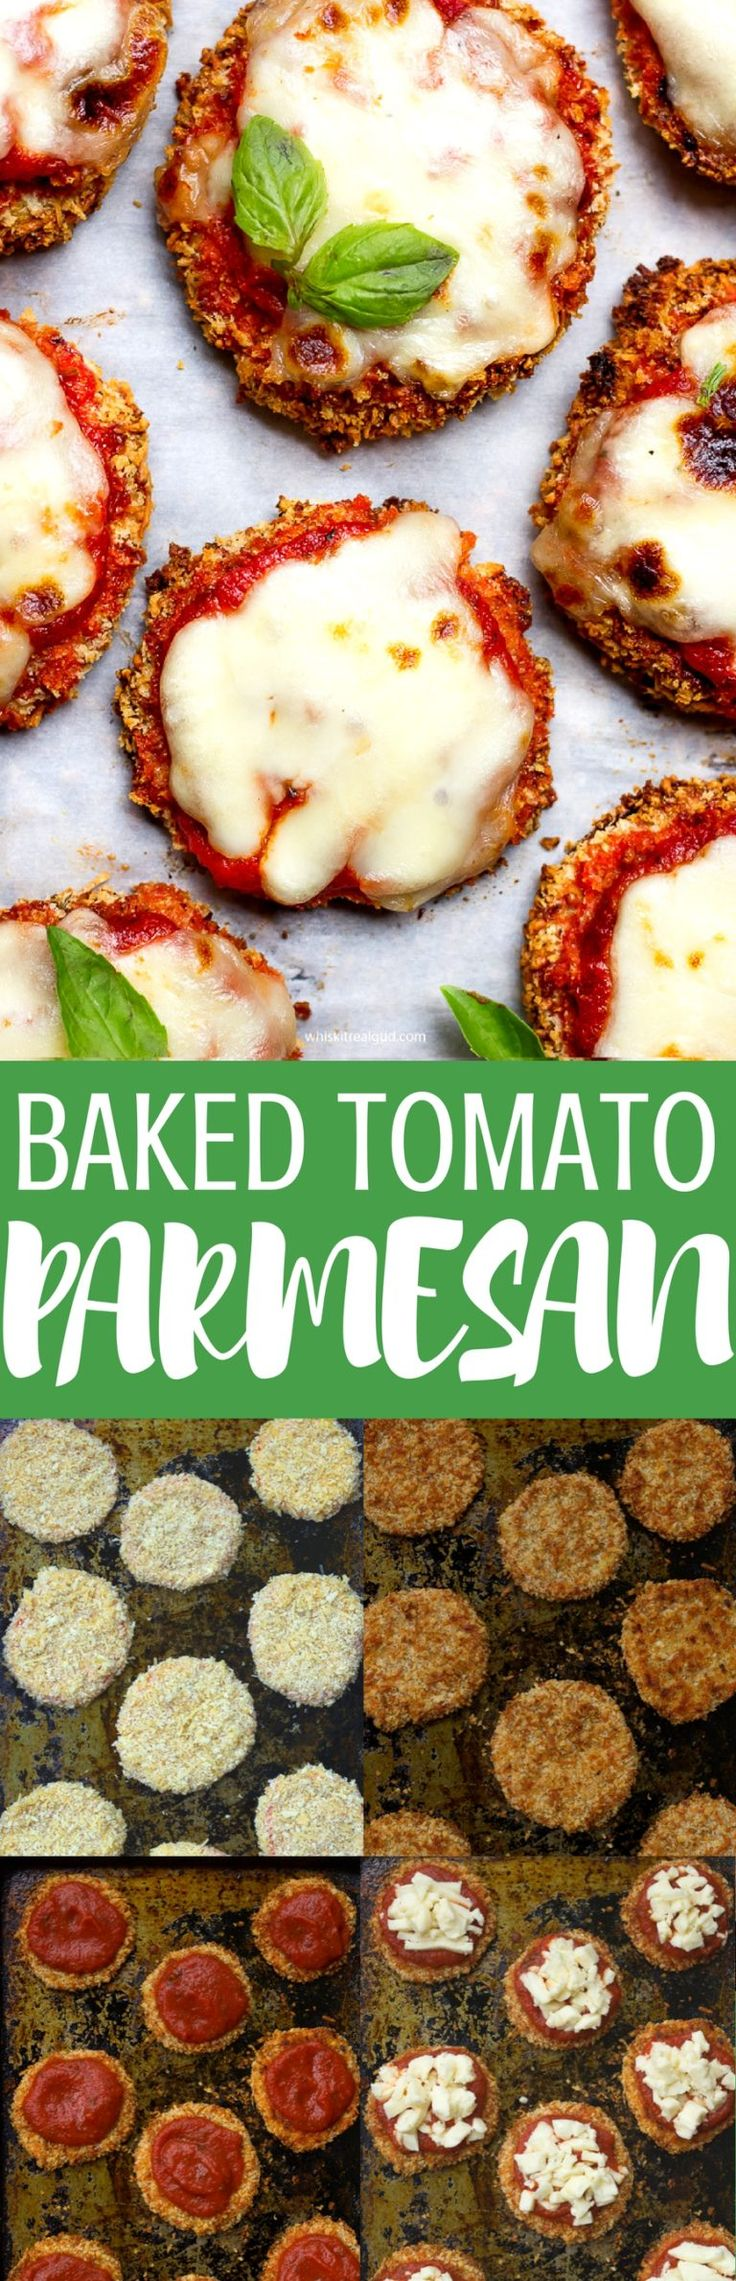 I am absolutely obsessed with this baked tomato Parmesan. Crunchy panko bread crumbs, melted parmesan cheese and tomato sauce. What can be better than that? This vegetarian dish is so delicious! A perfect kid friendly weeknight meal!